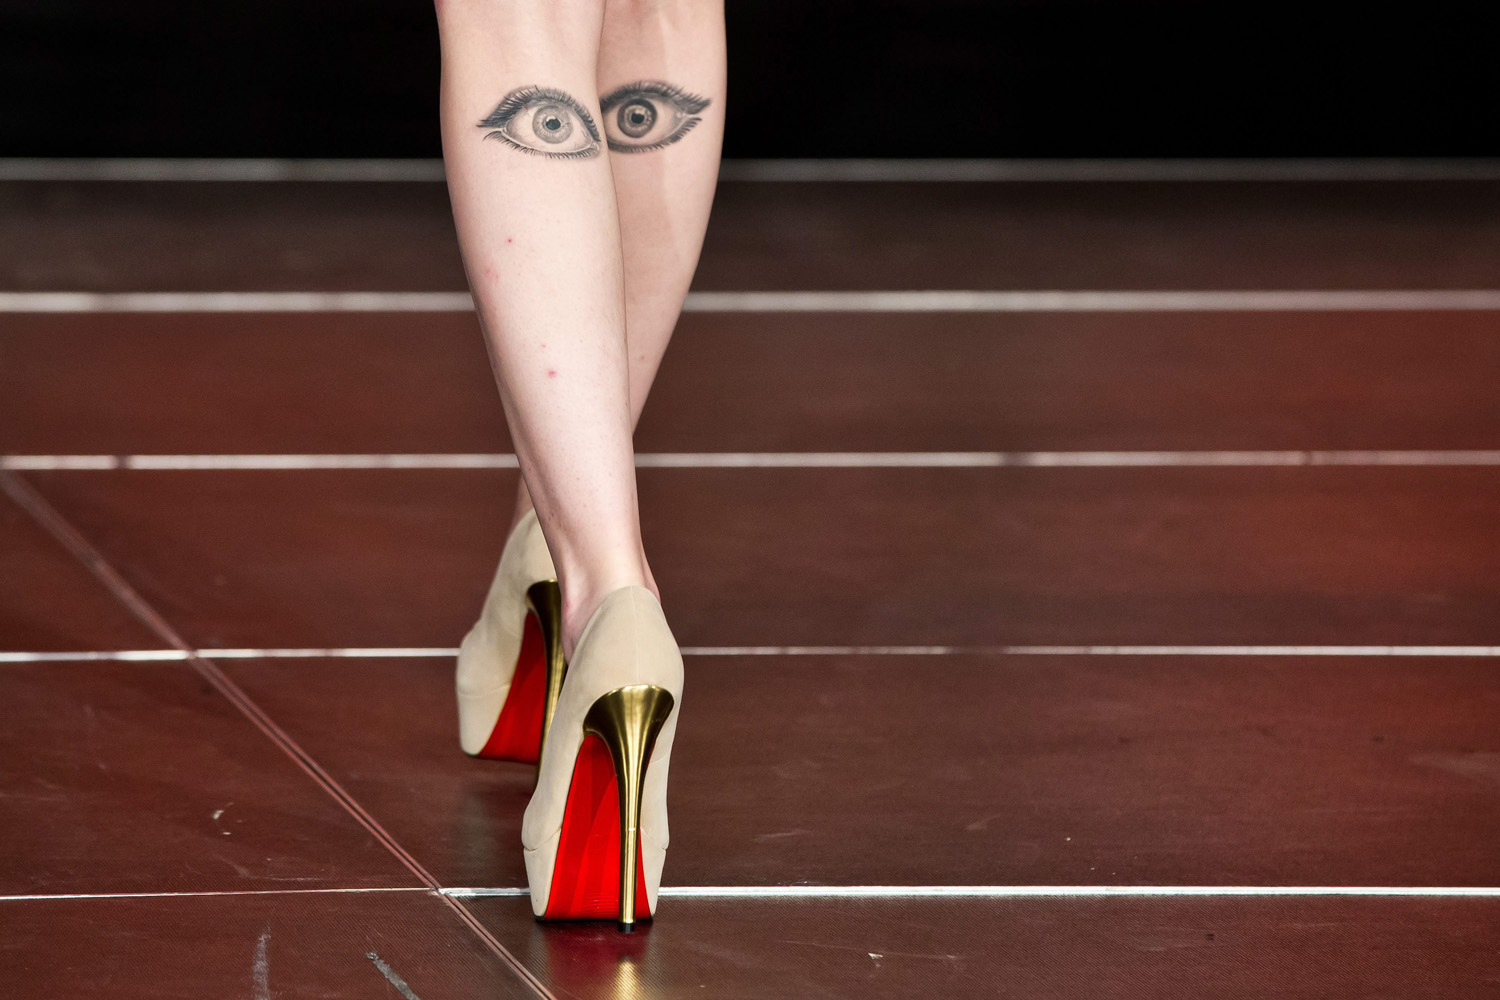 Oct. 7, 2013. A model with eyes tattooed on her calves takes to the catwalk during the 2013 fall/winter hairstyle trends ahead of the Bavarian championship and trade fair Hair, Beauty and more '2013 Hair' in Nuremberg, Germany.